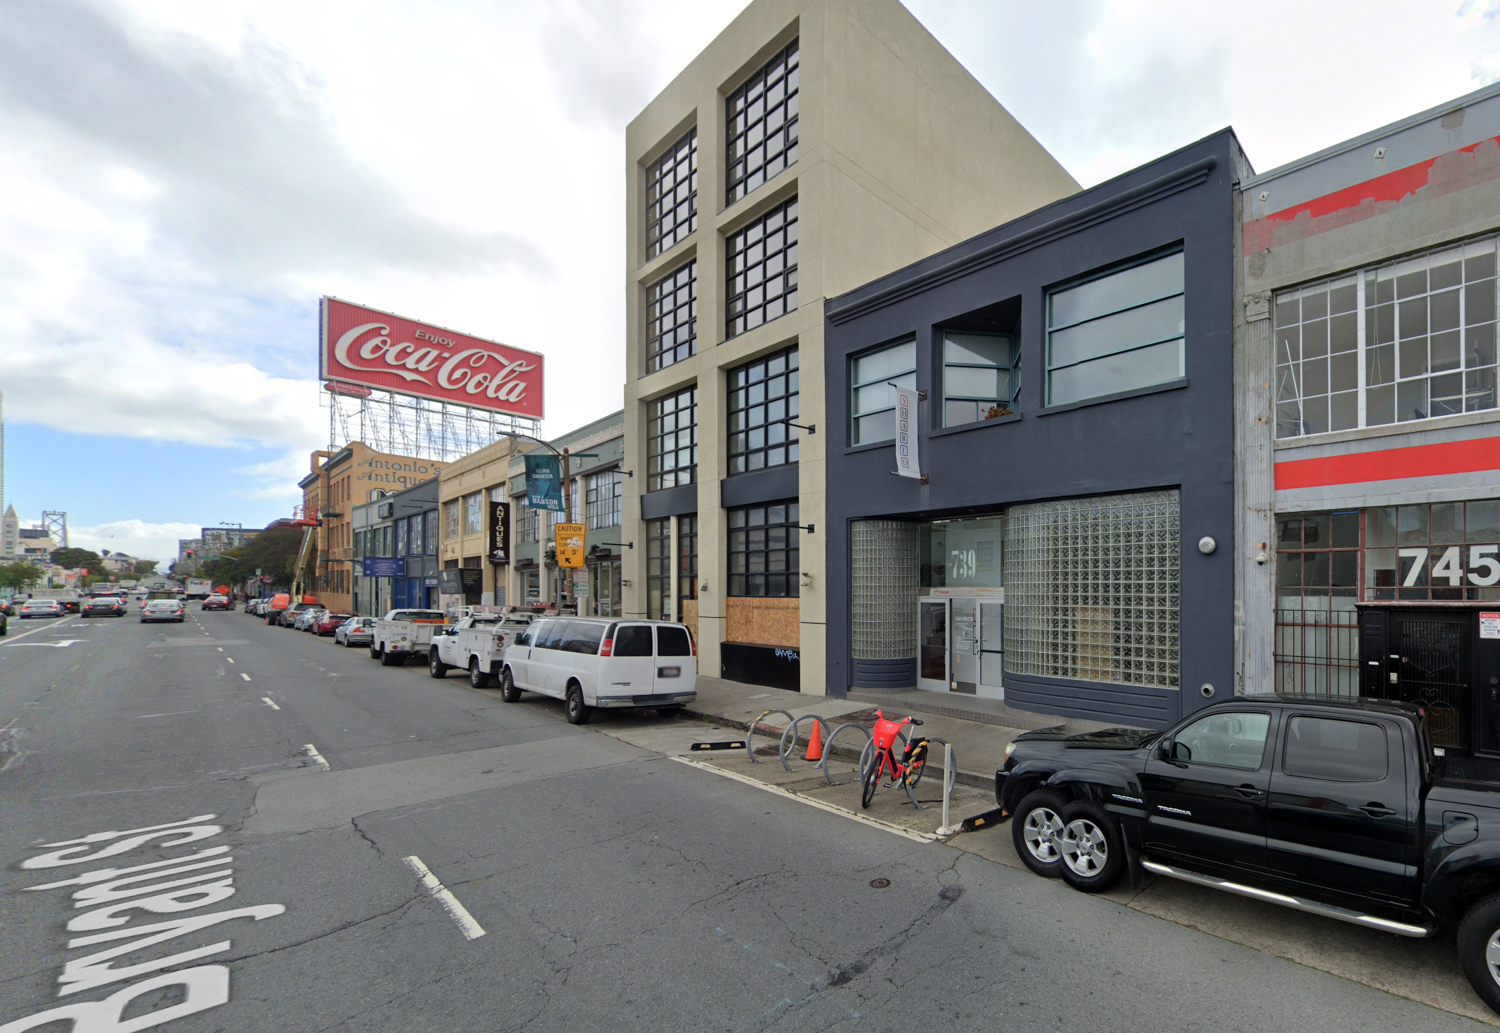 739 Bryant Street nearby the now-removed Coca Cola sign, image via Google Street View